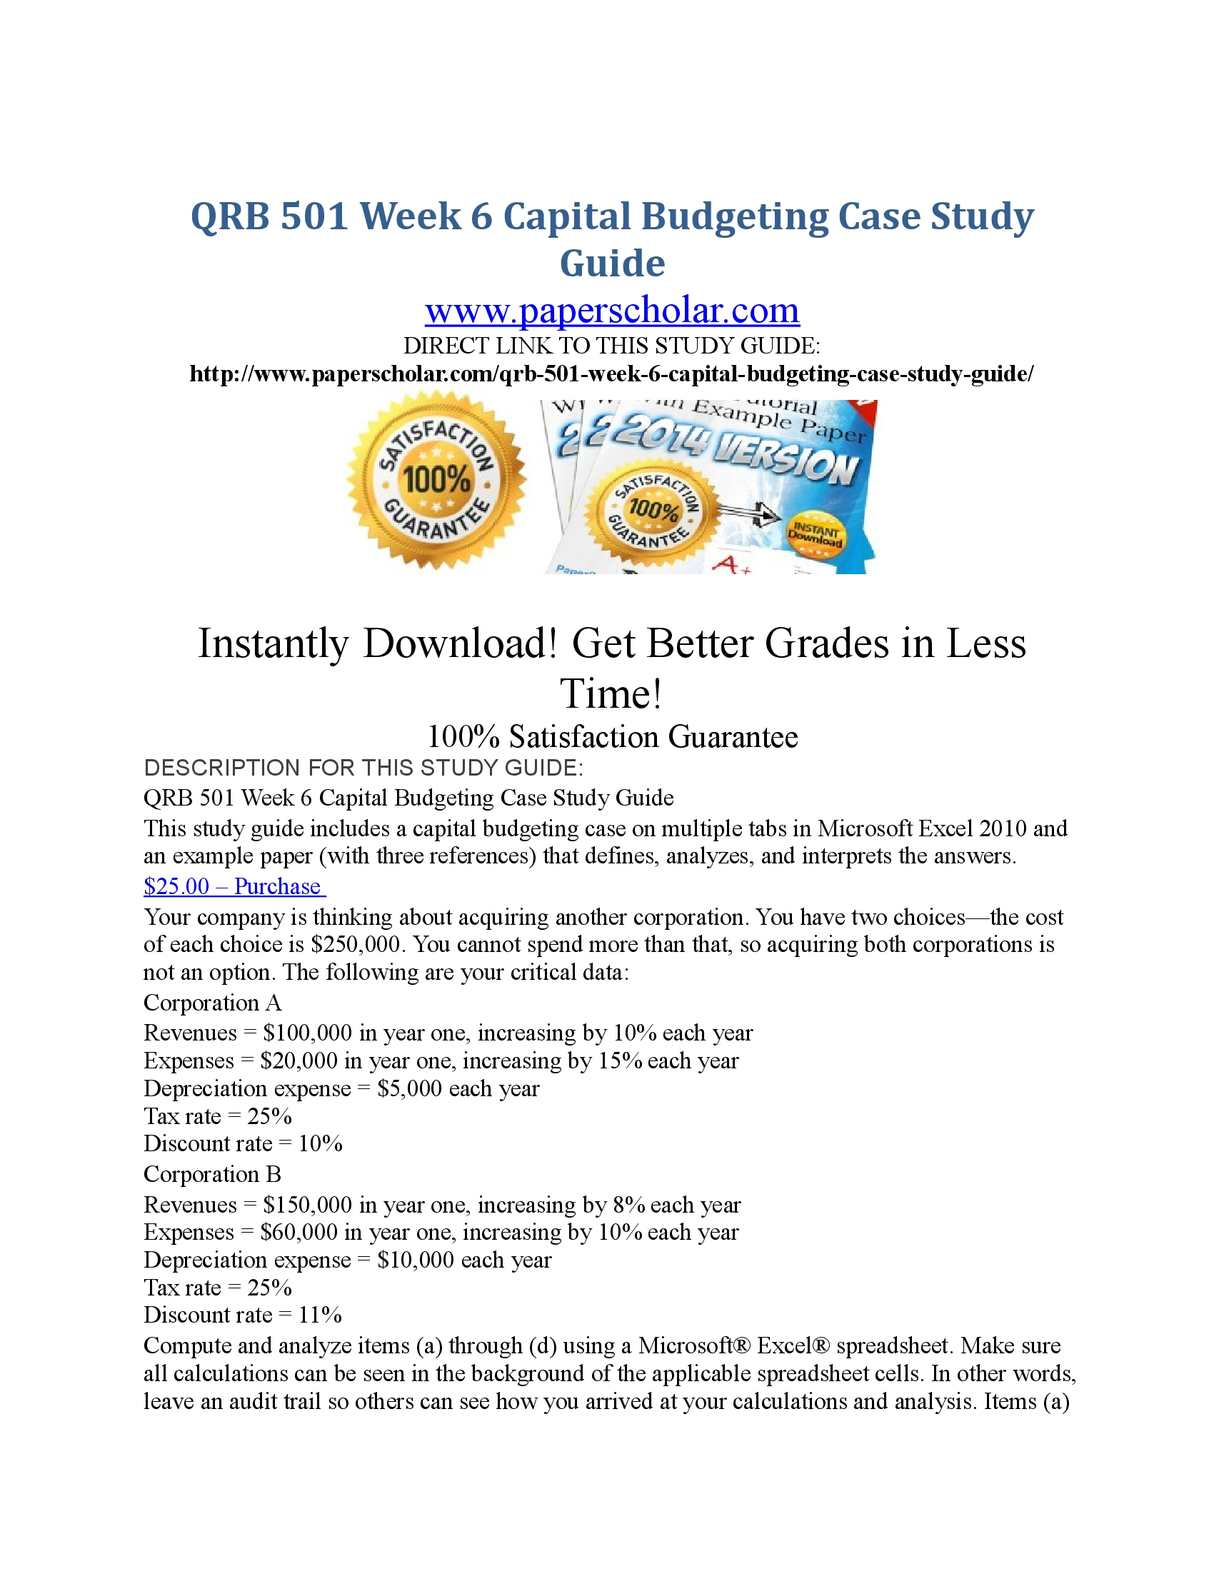 capital budgeting case study qrb 501